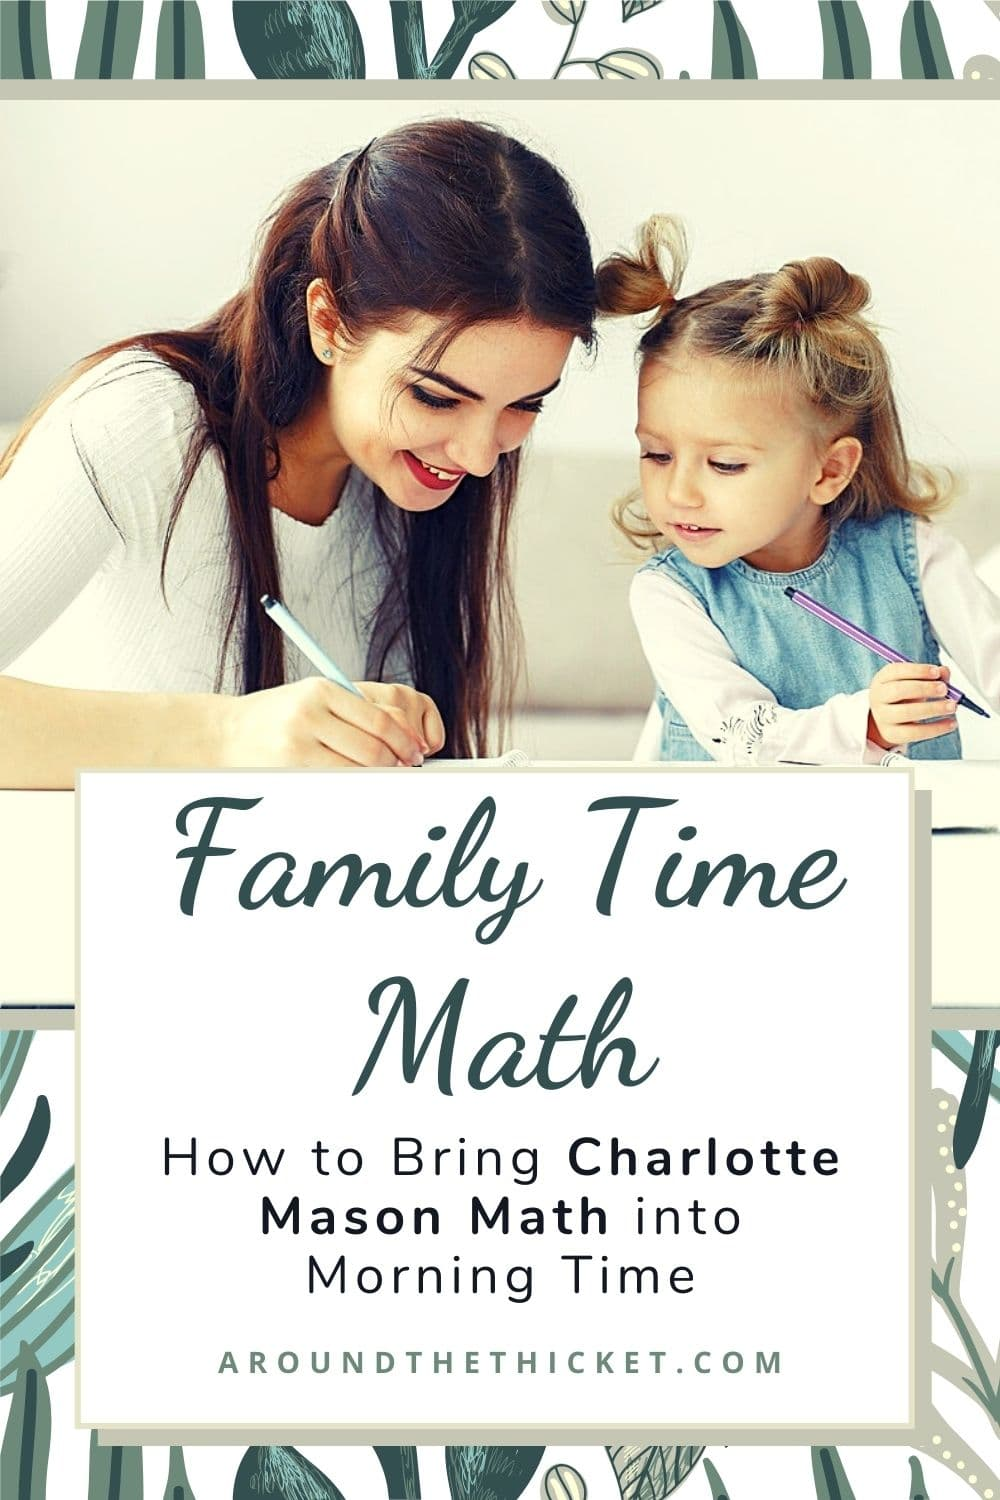 Bring the family together for living math lessons with Family Time Math. Learn how Charlotte Mason math can be a joyful part of morning time.